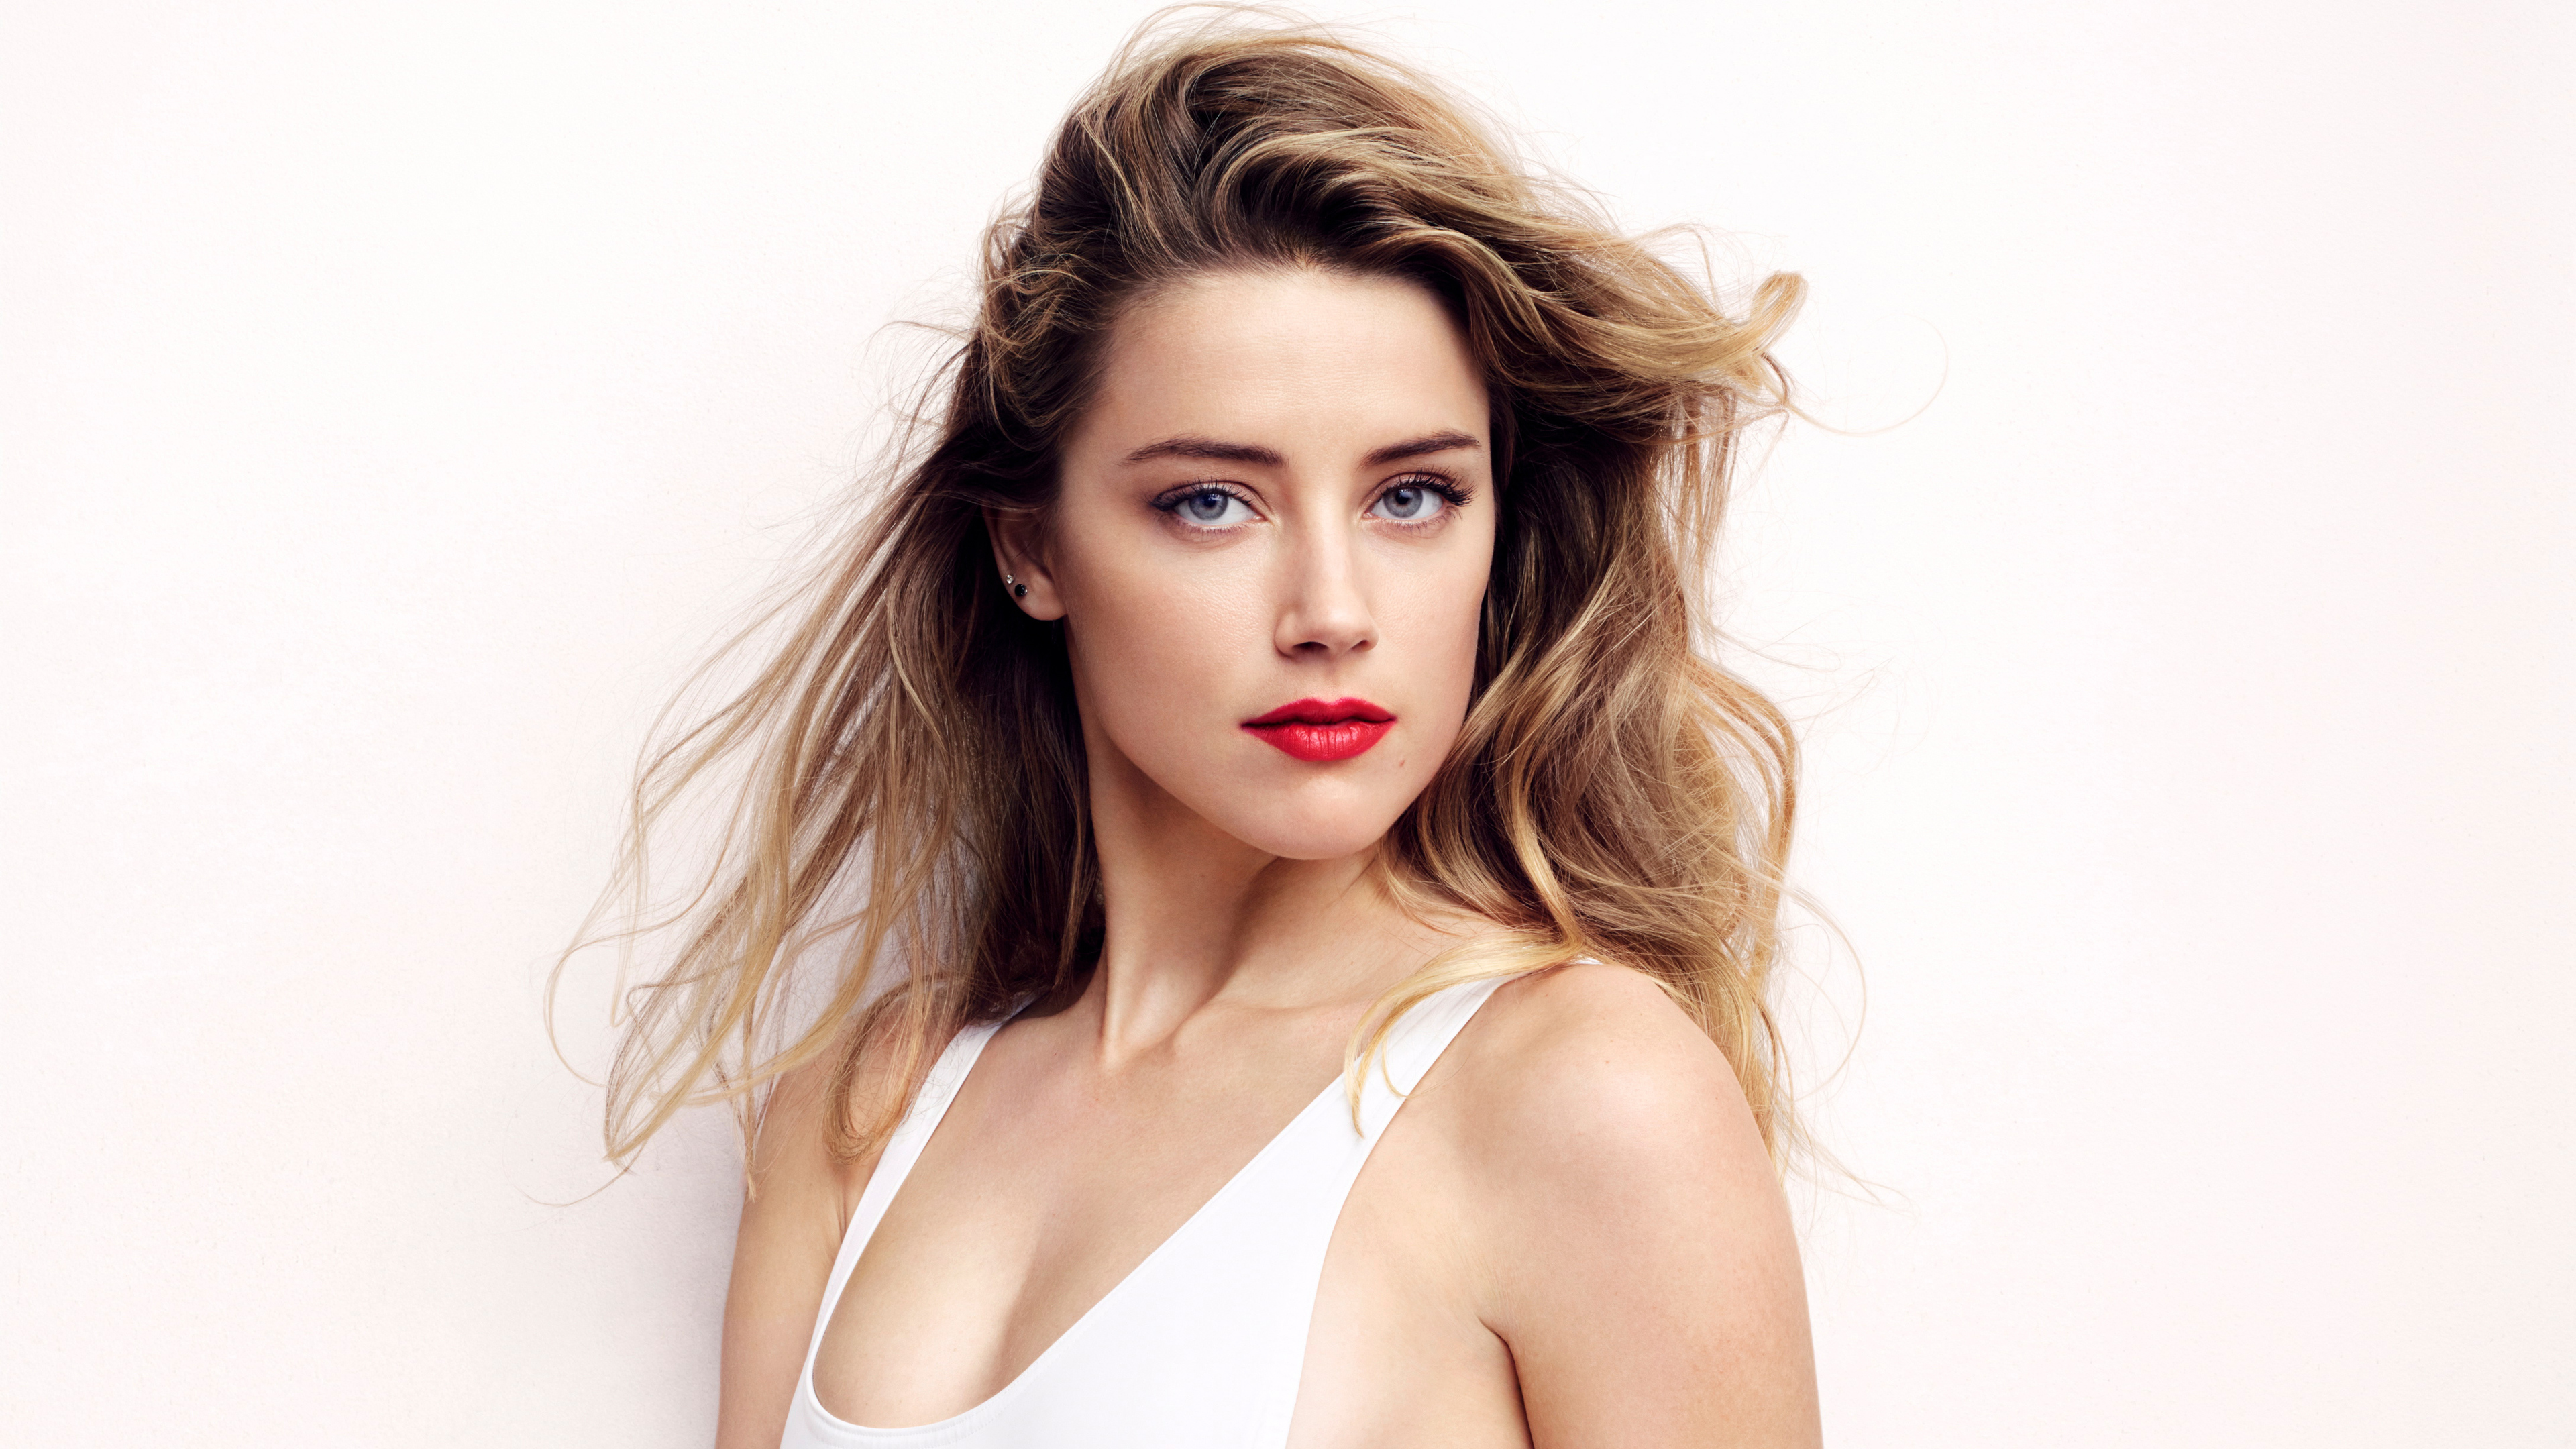 amber heard 4k 2018 1539535528 - Amber Heard 4k 2018 - hd-wallpapers, girls wallpapers, celebrities wallpapers, amber heard wallpapers, 4k-wallpapers